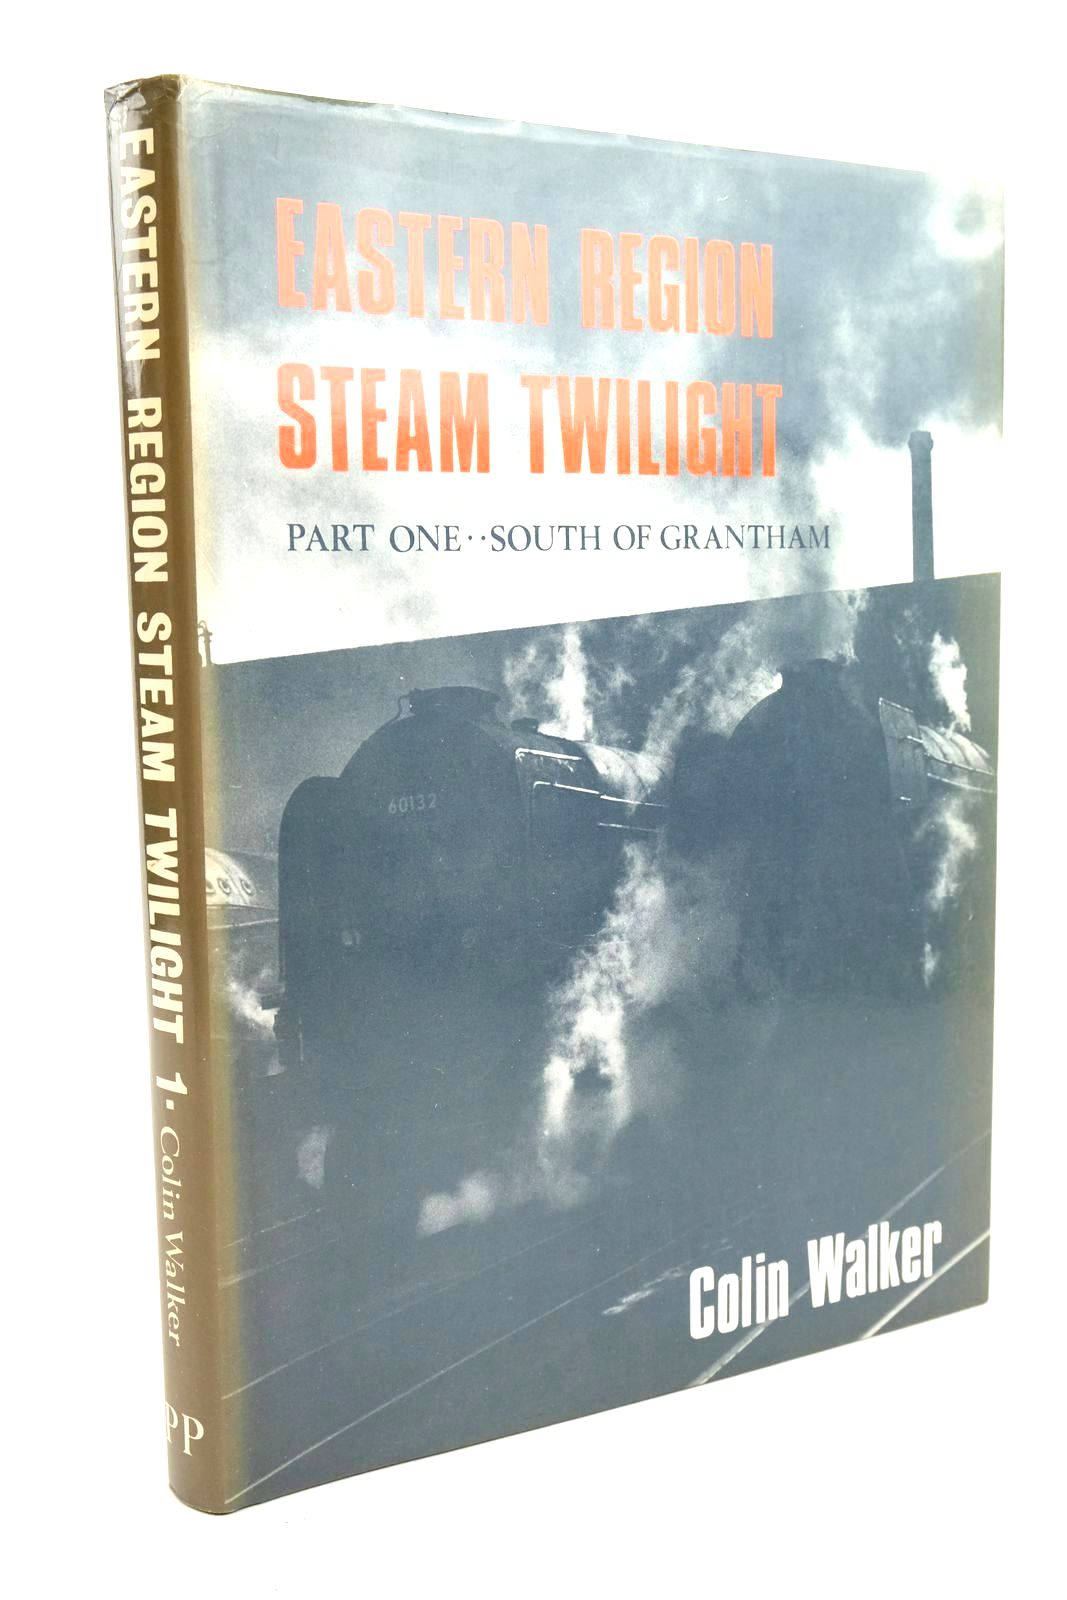 Photo of EASTERN REGION STEAM TWILIGHT PART ONE: SOUTH OF GRANTHAM written by Walker, Colin published by Pendyke Publications (STOCK CODE: 1321080)  for sale by Stella & Rose's Books